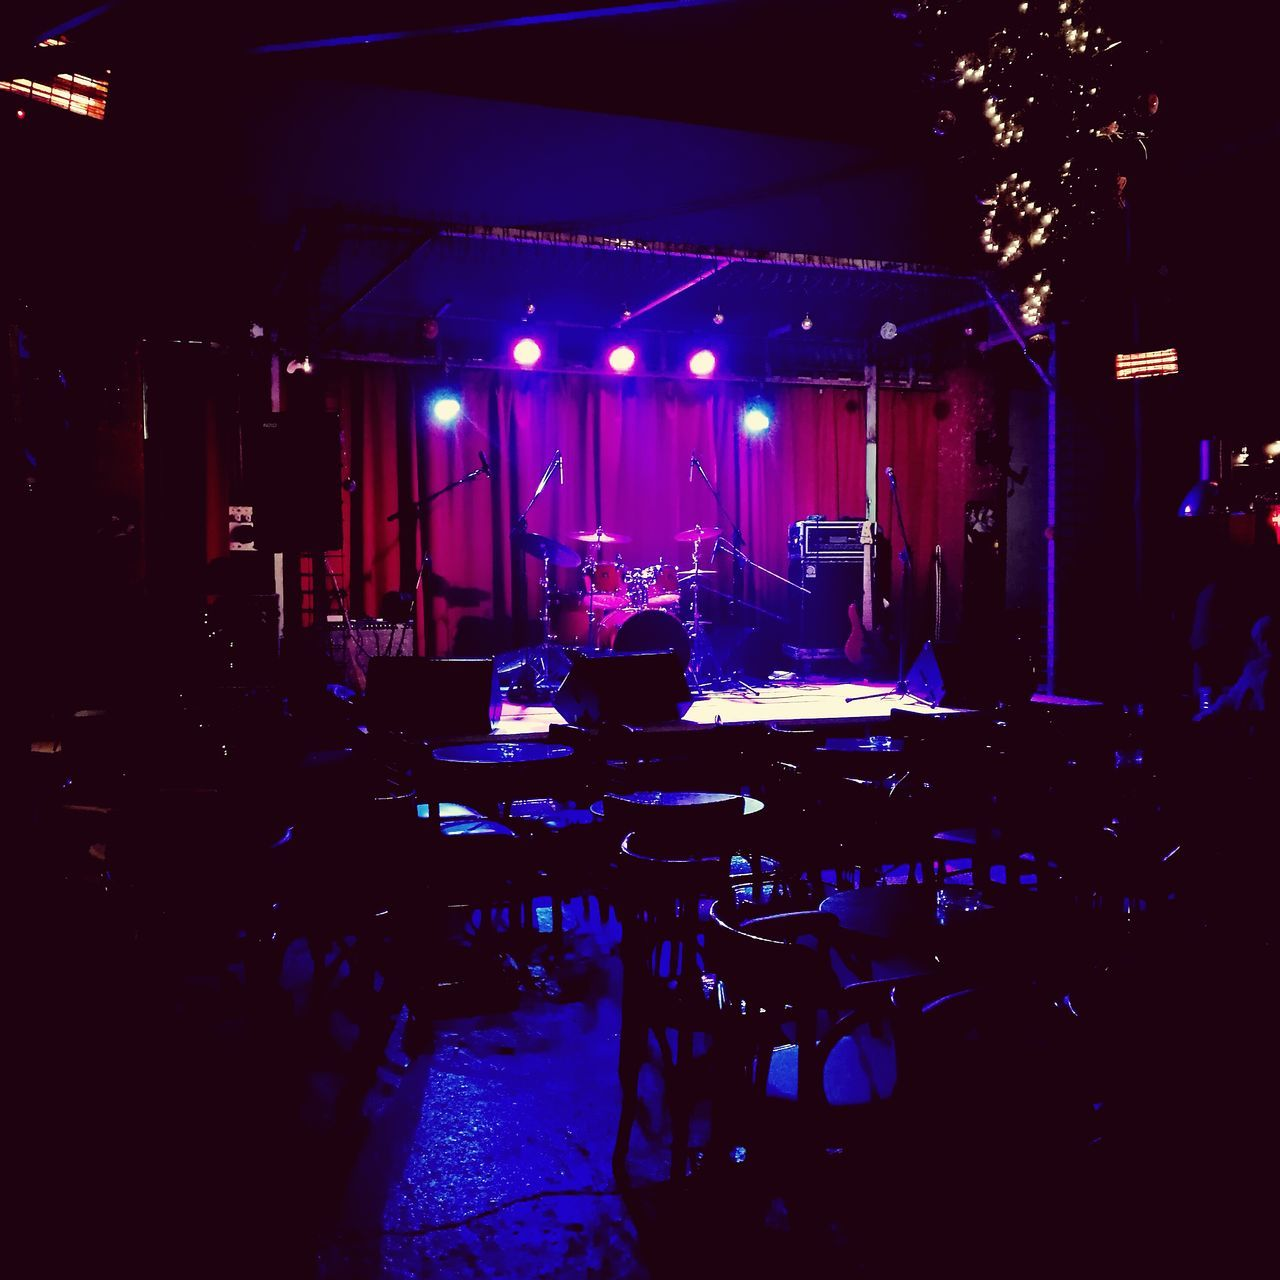 Concert. Reflection Blue Bar - Drink Establishment Indoors  Nightlife Illuminated No People Alcohol